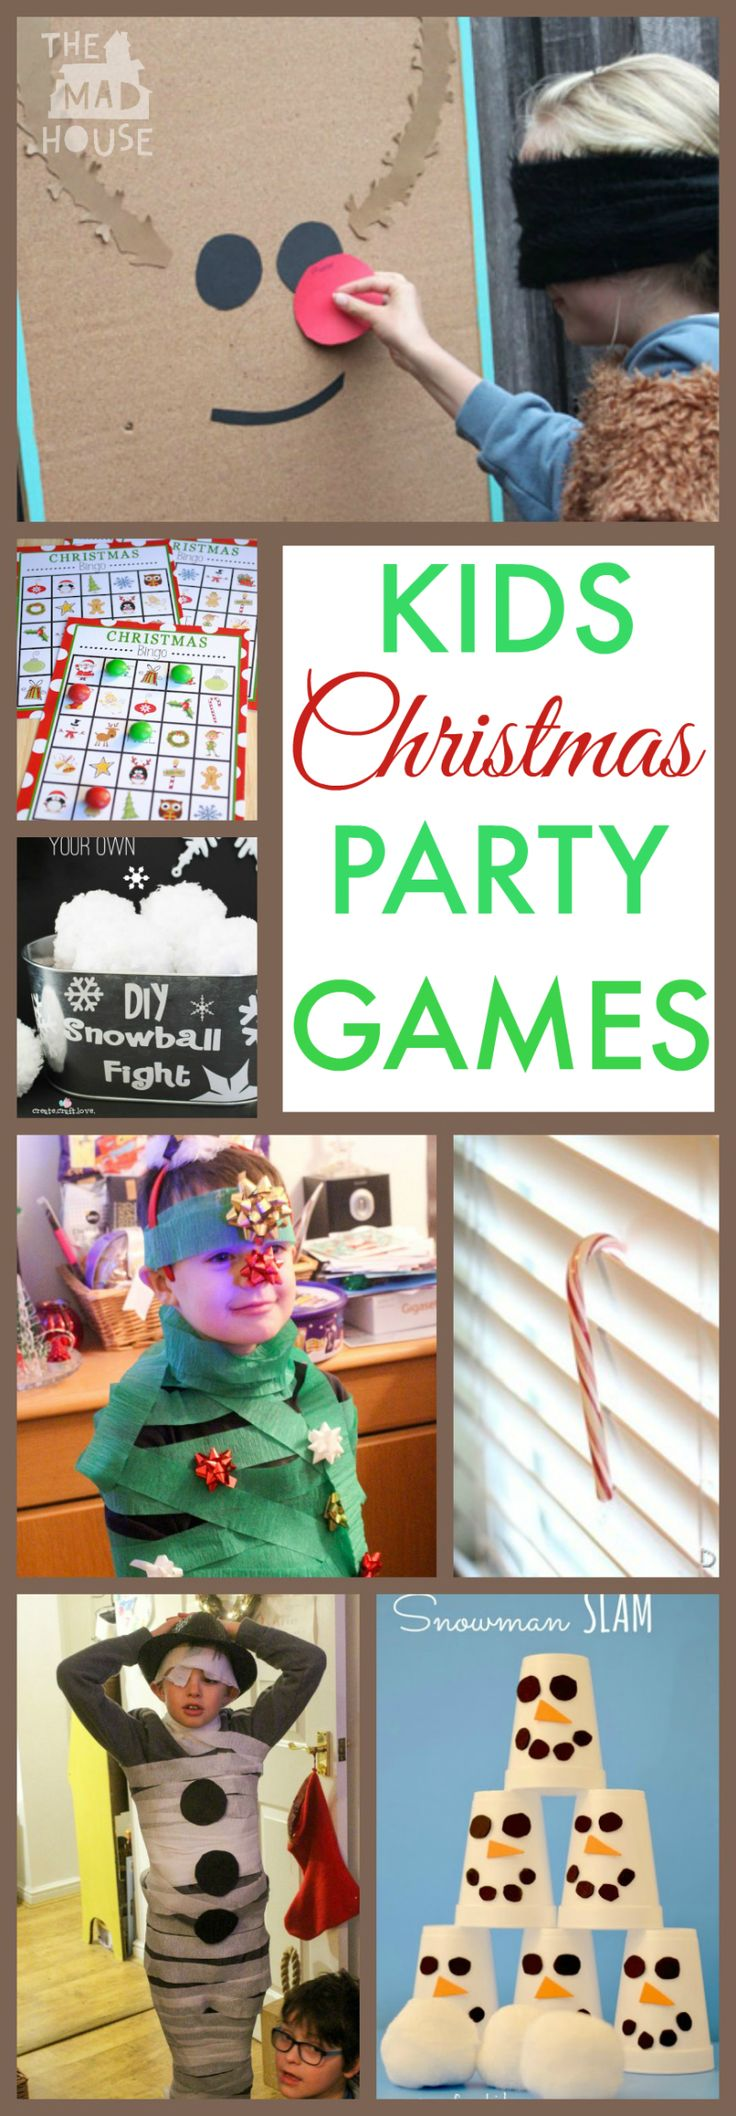 10 Fun Kids Christmas party games - Mum In The Madhouse